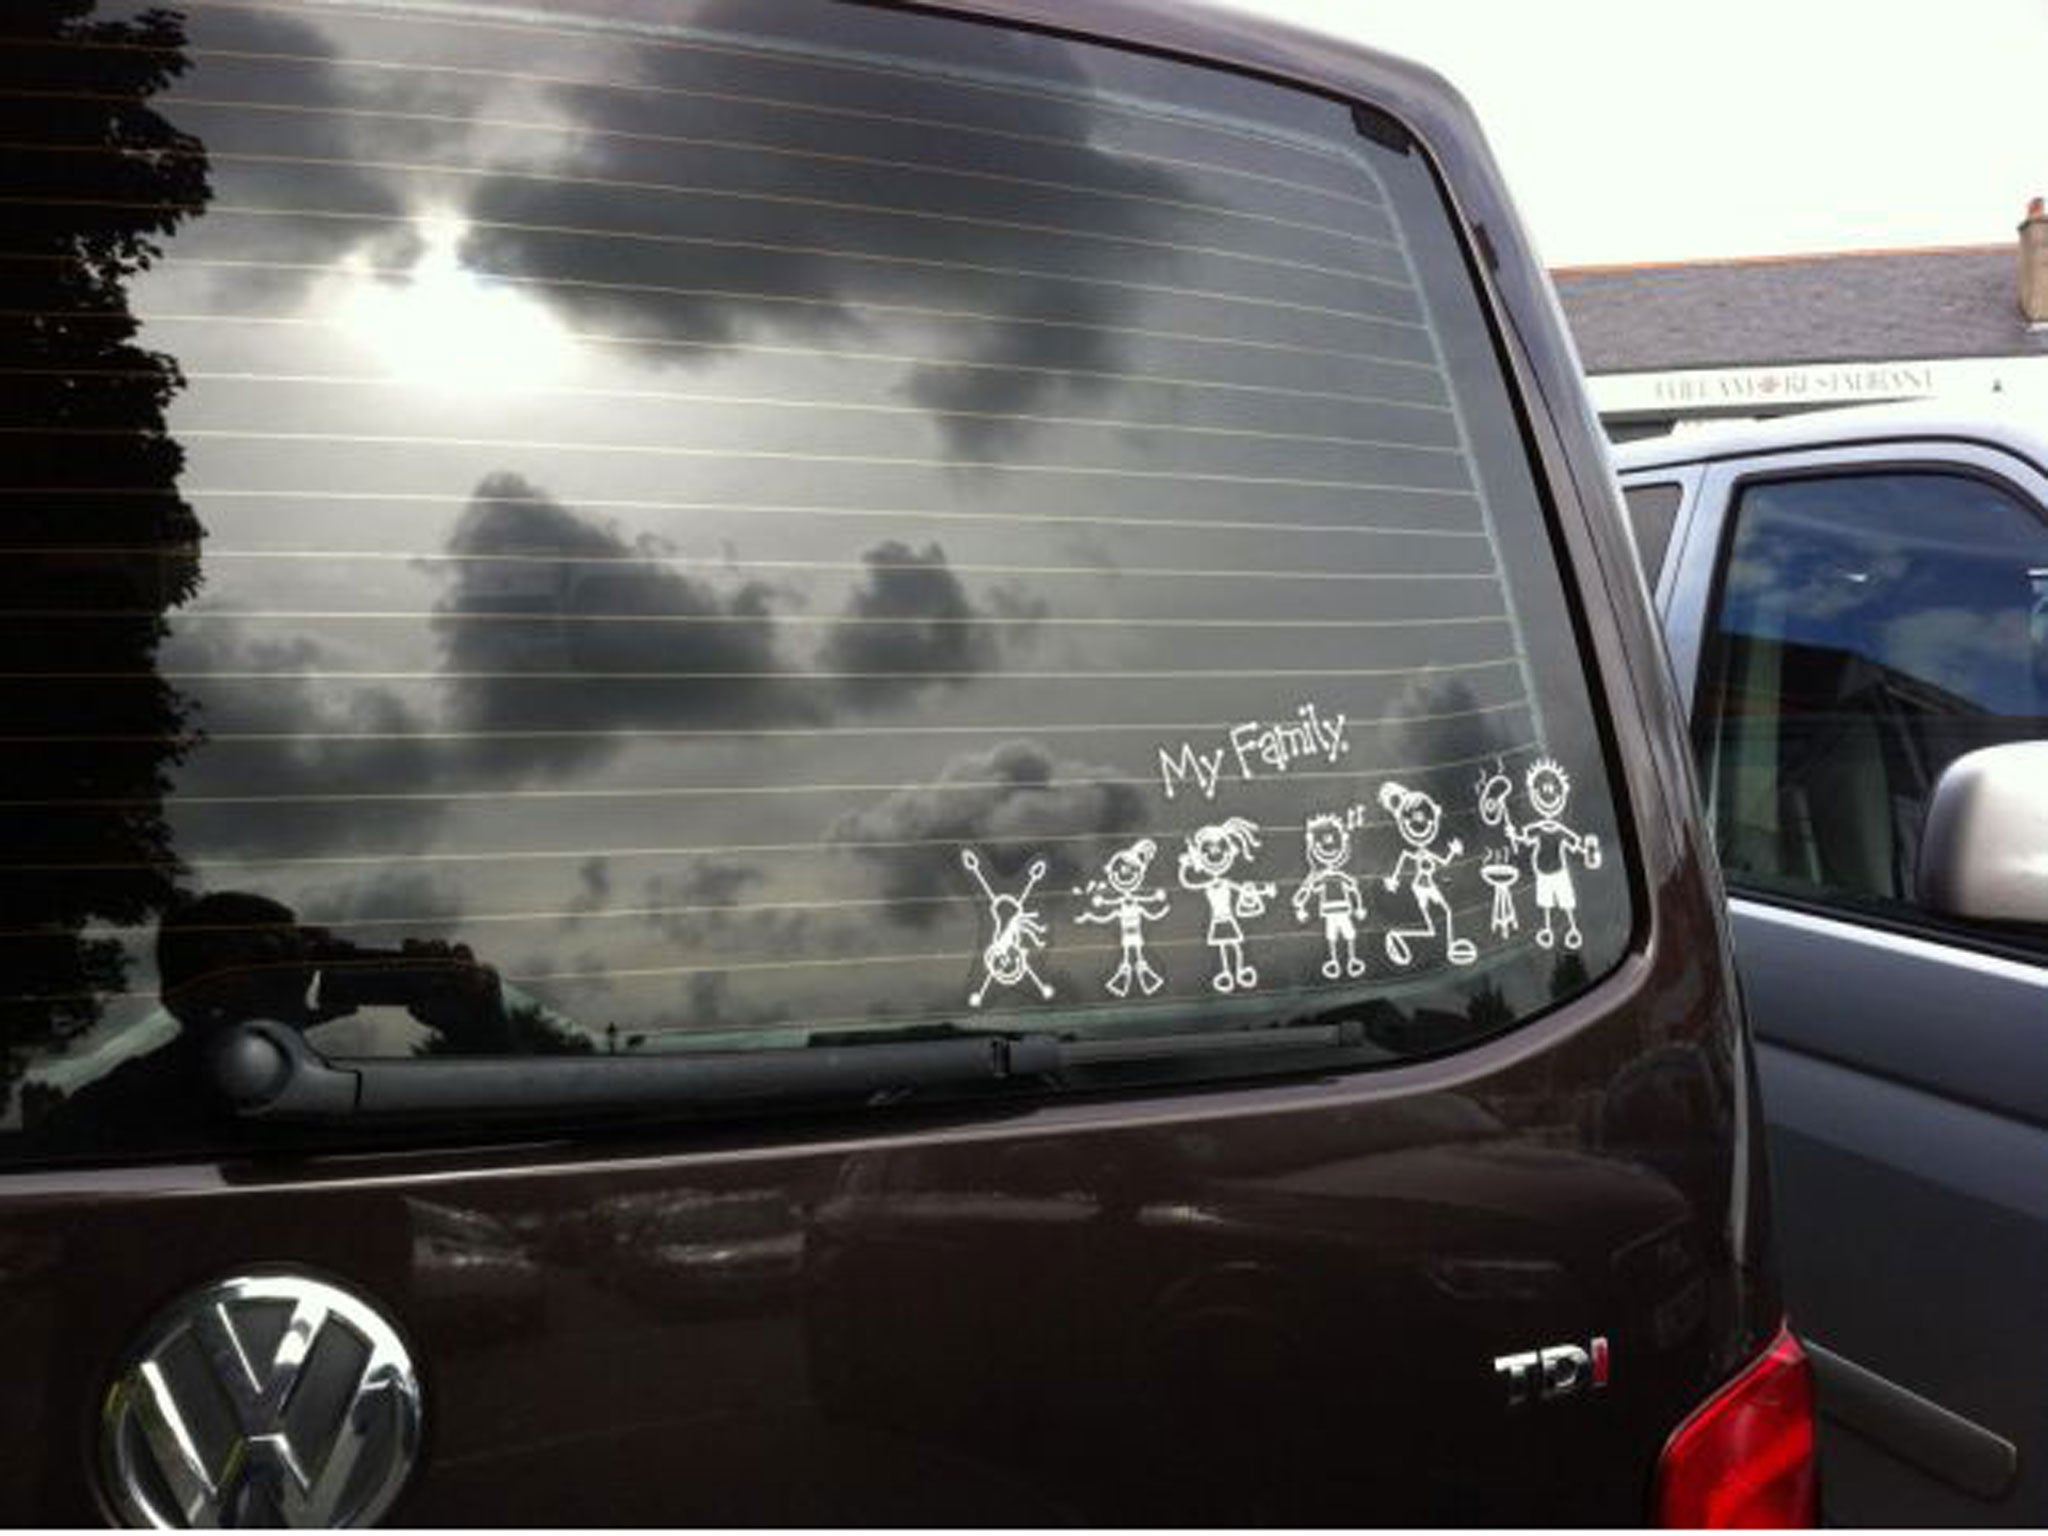 Unofficial and irreverent takes on car stickers | The Independent